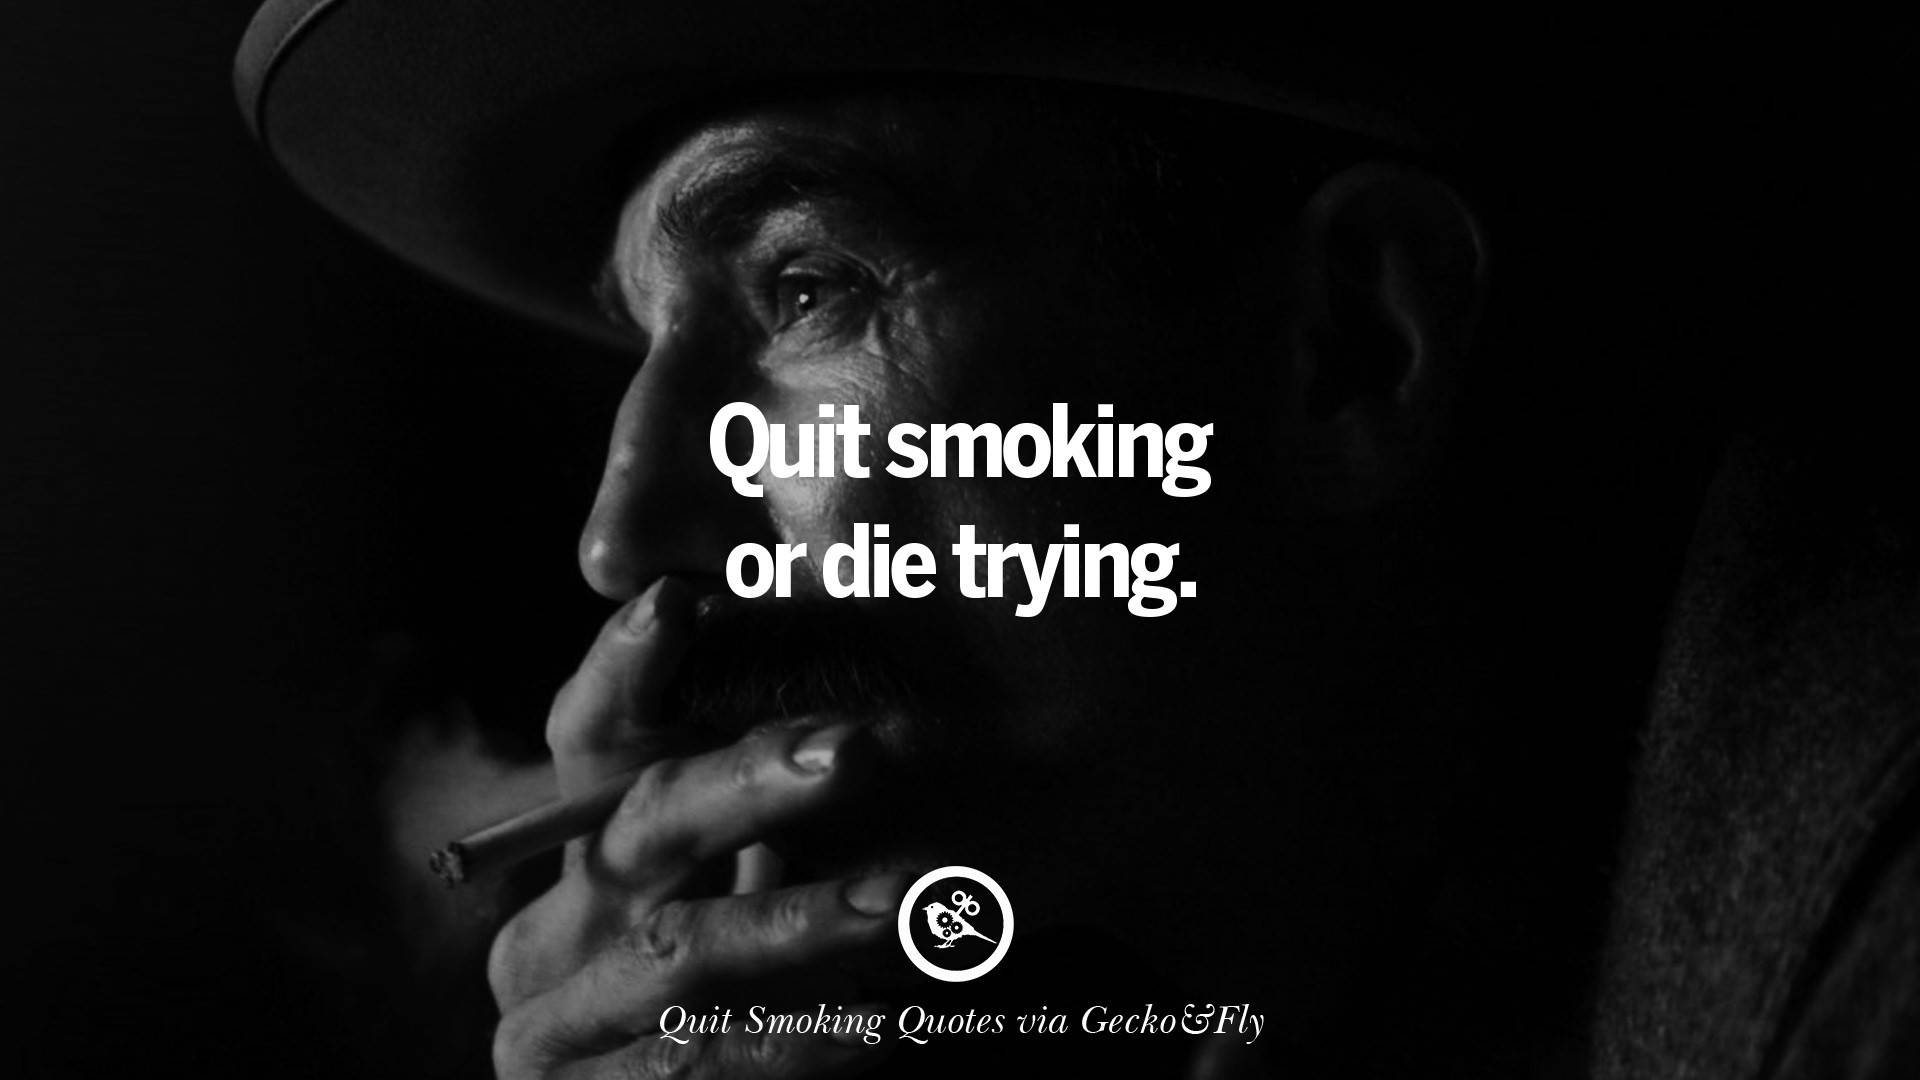 1920x1080 Quit smoking or die trying.